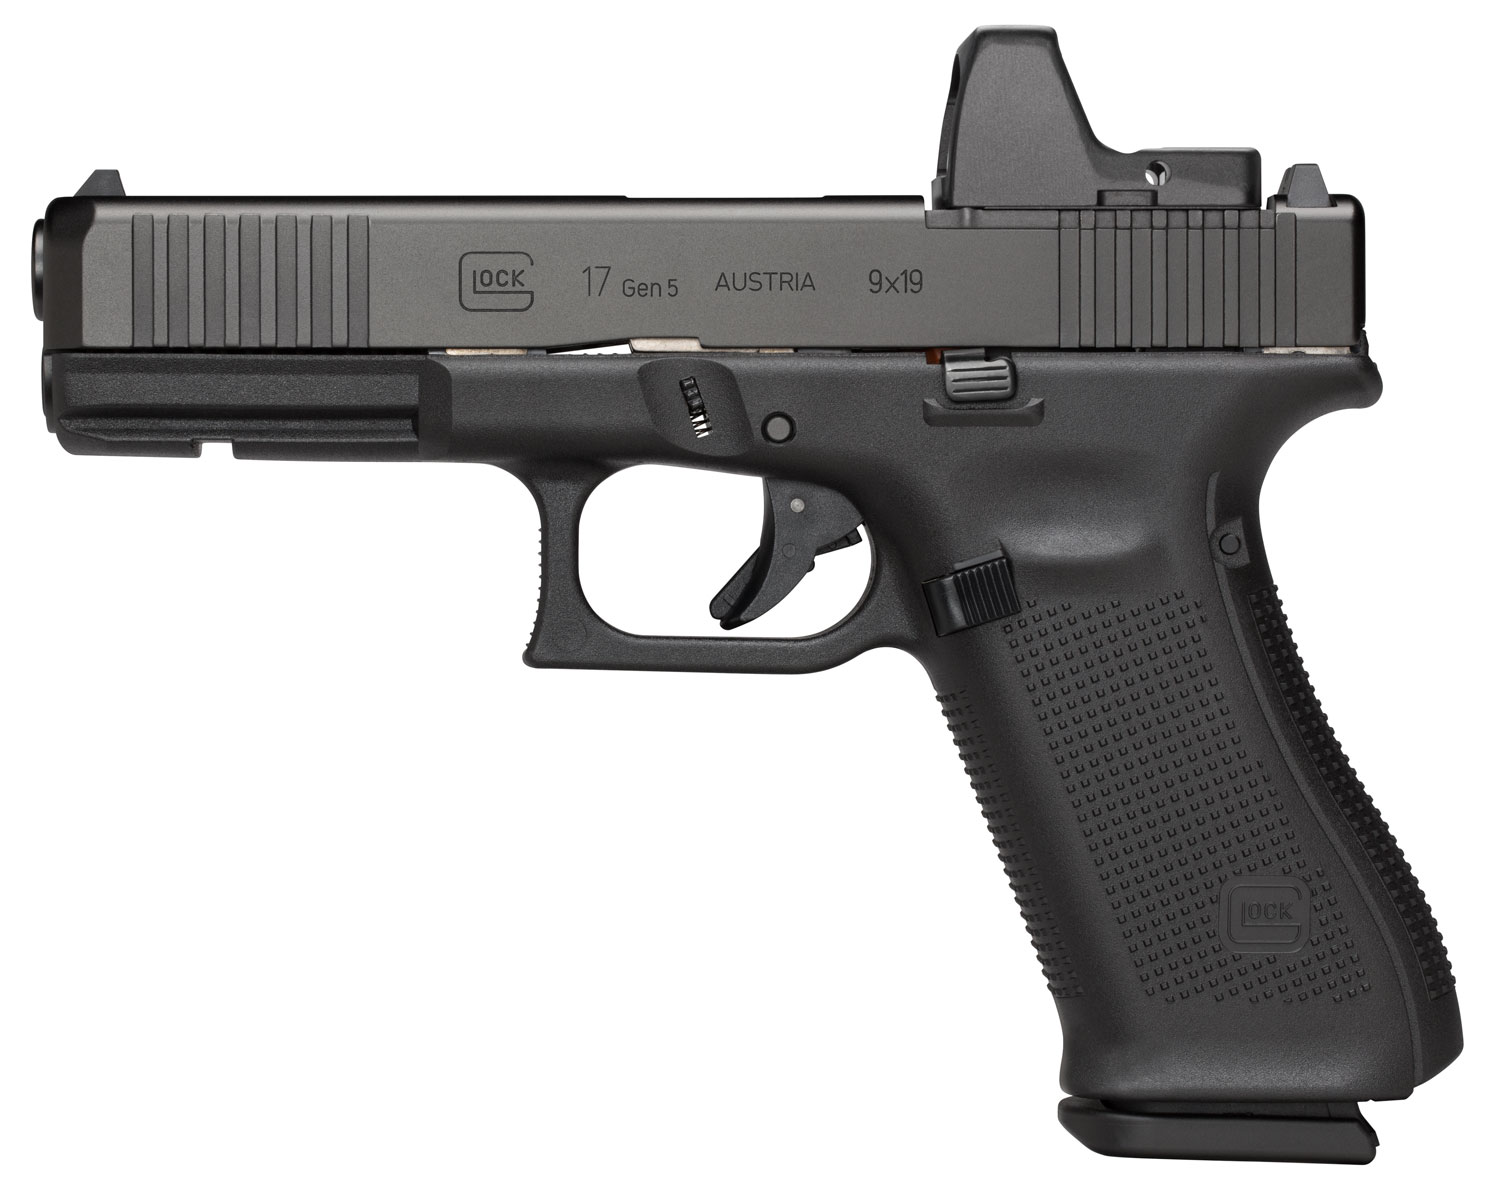 GLOCK PA175S201MOS G17 9MM G5 MOS FXD FS 10R